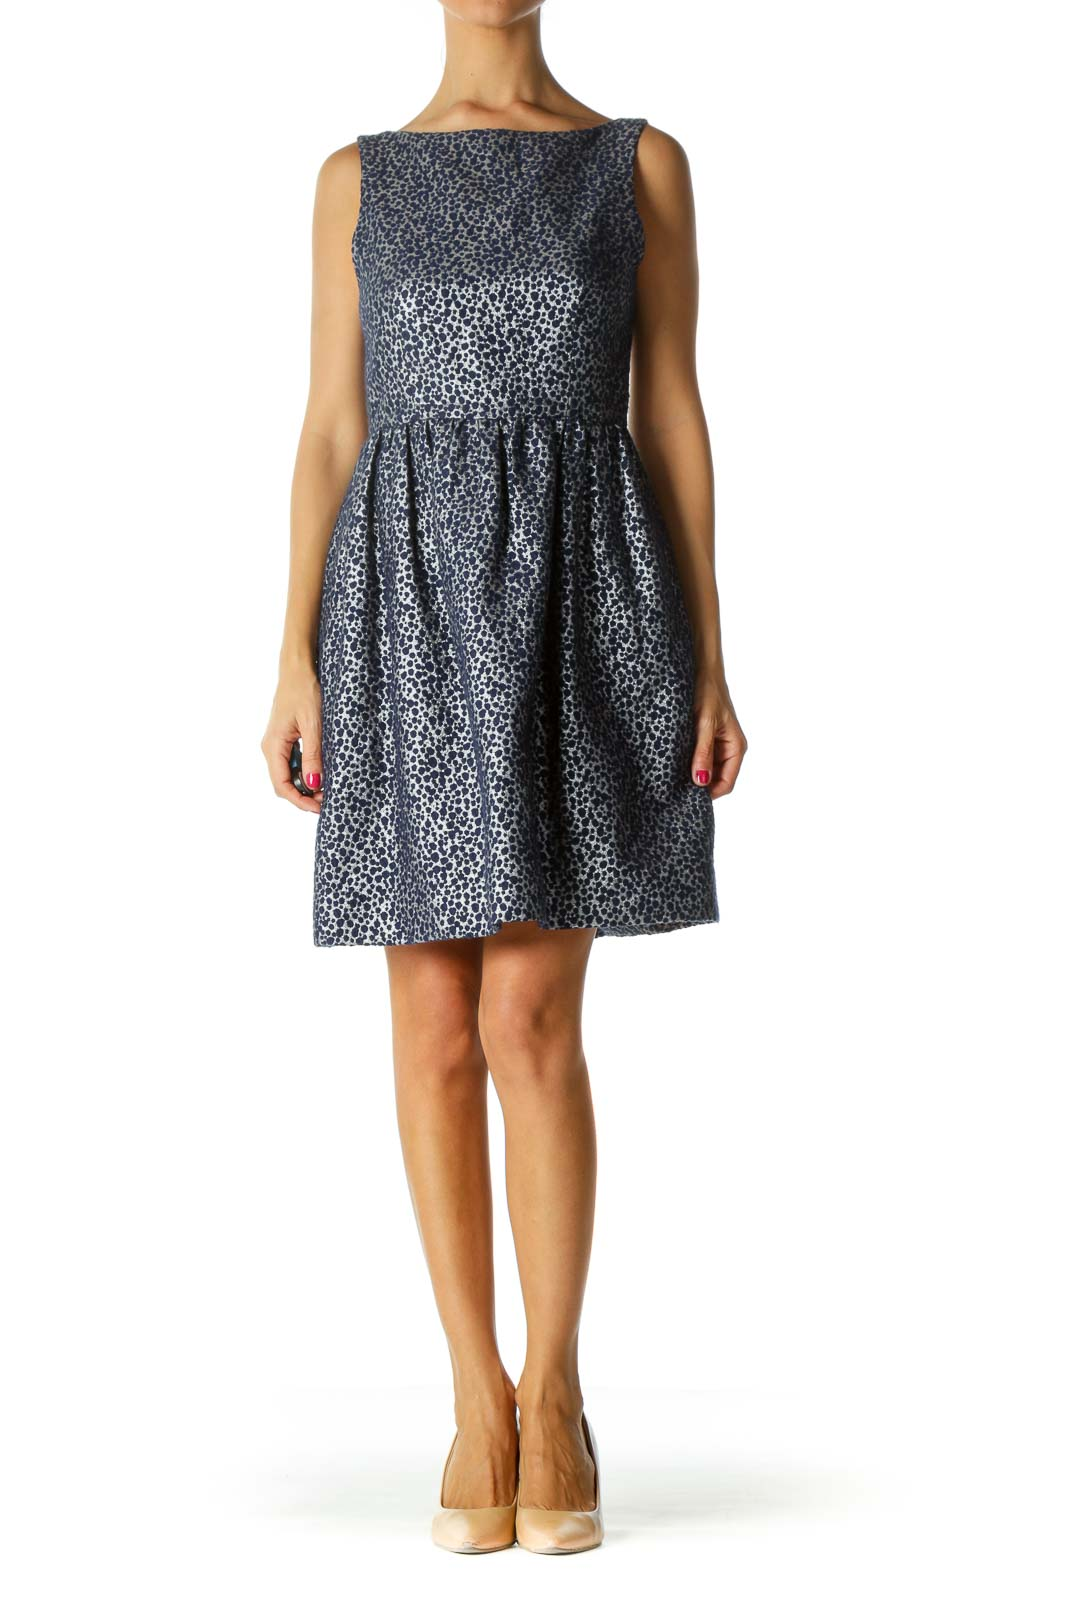 Blue Silver Textured Cinched Waist Dress